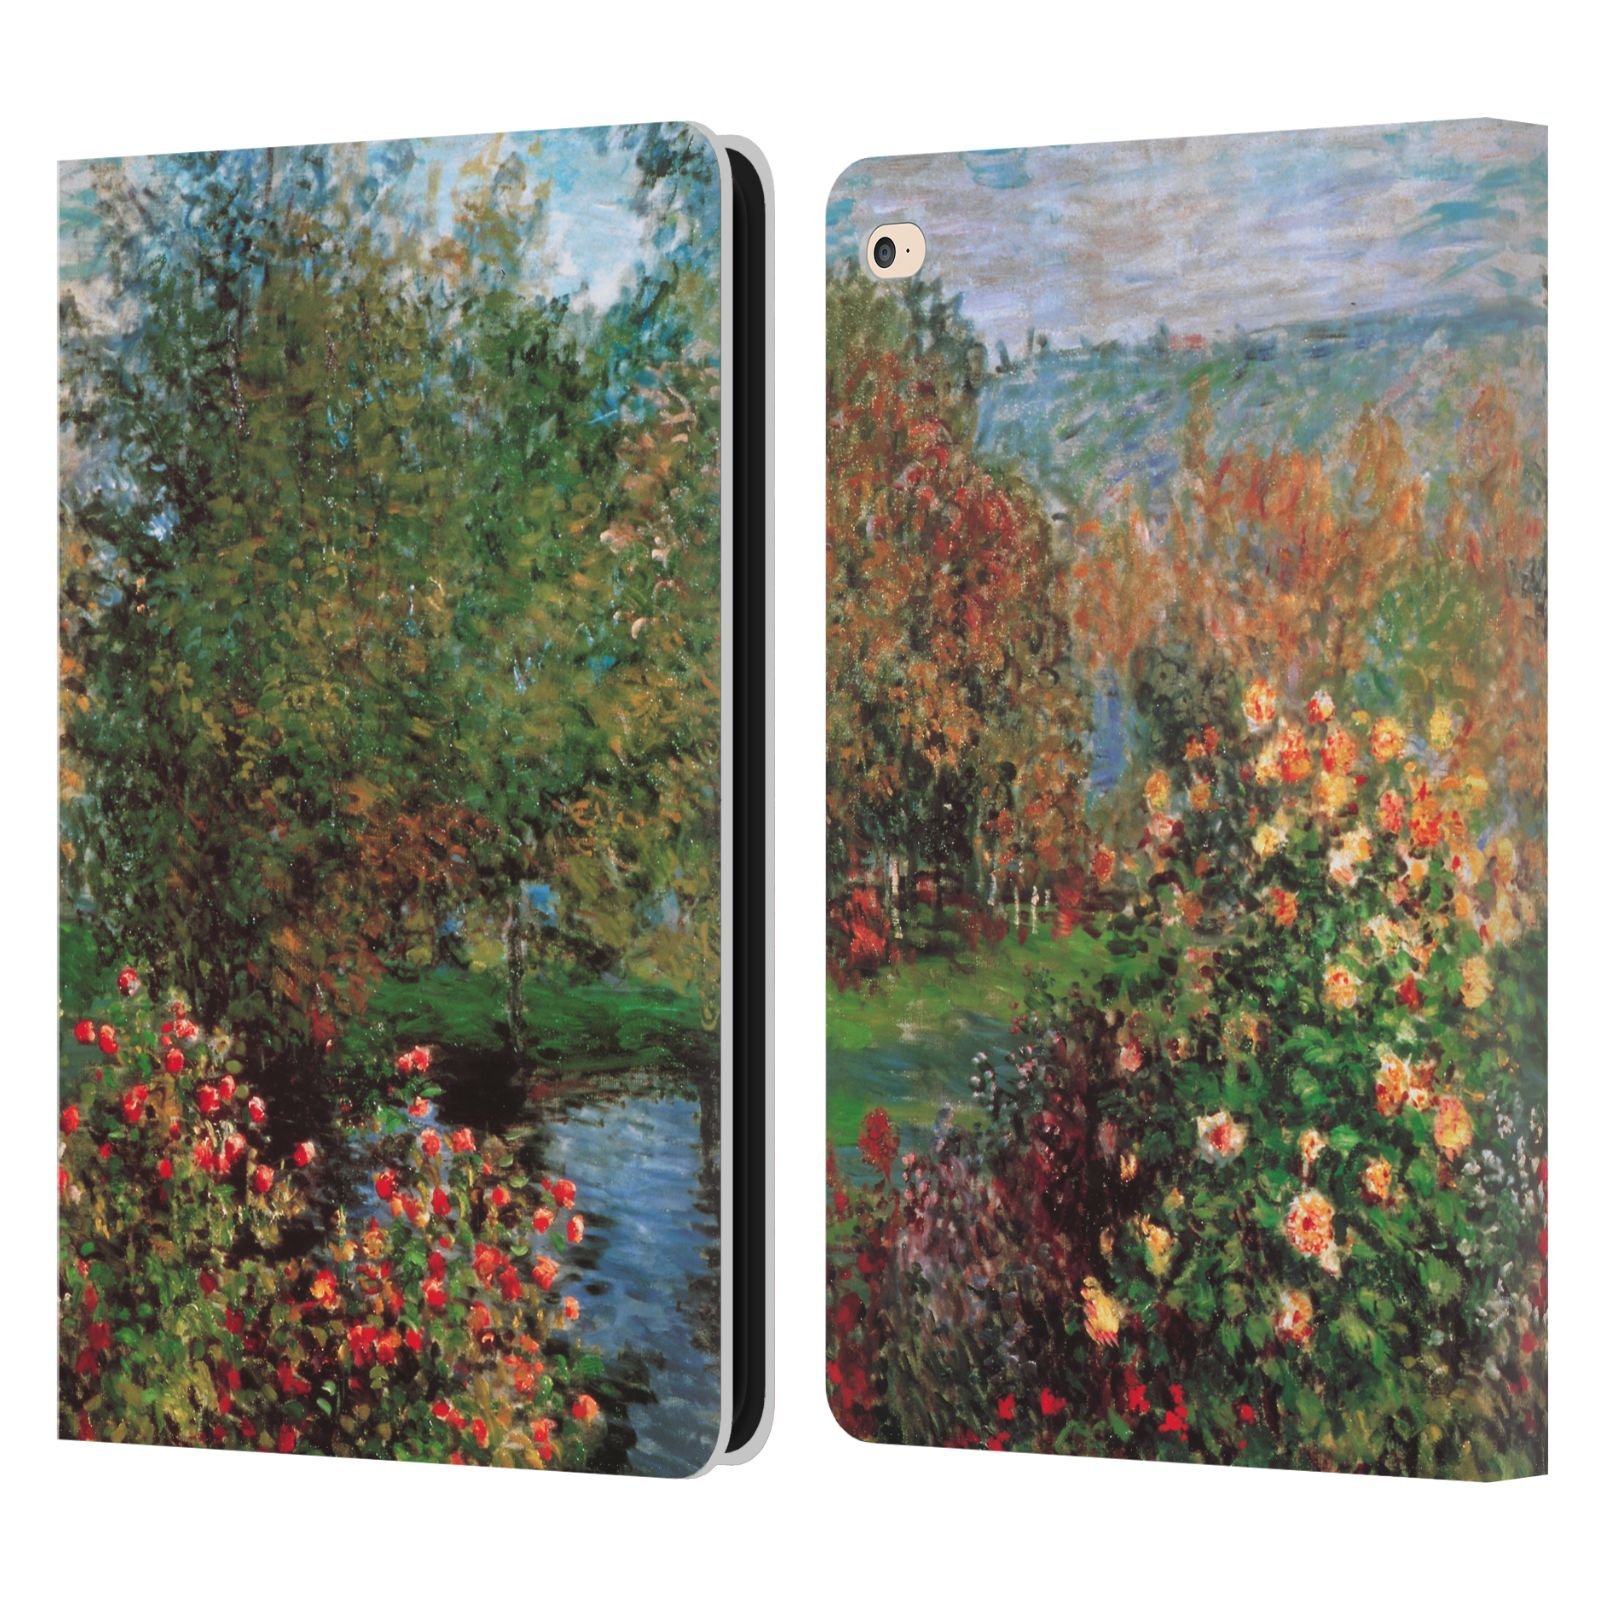 OFFICIAL-MASTERS-COLLECTION-PAINTINGS-1-LEATHER-BOOK-WALLET-CASE-FOR-APPLE-iPAD